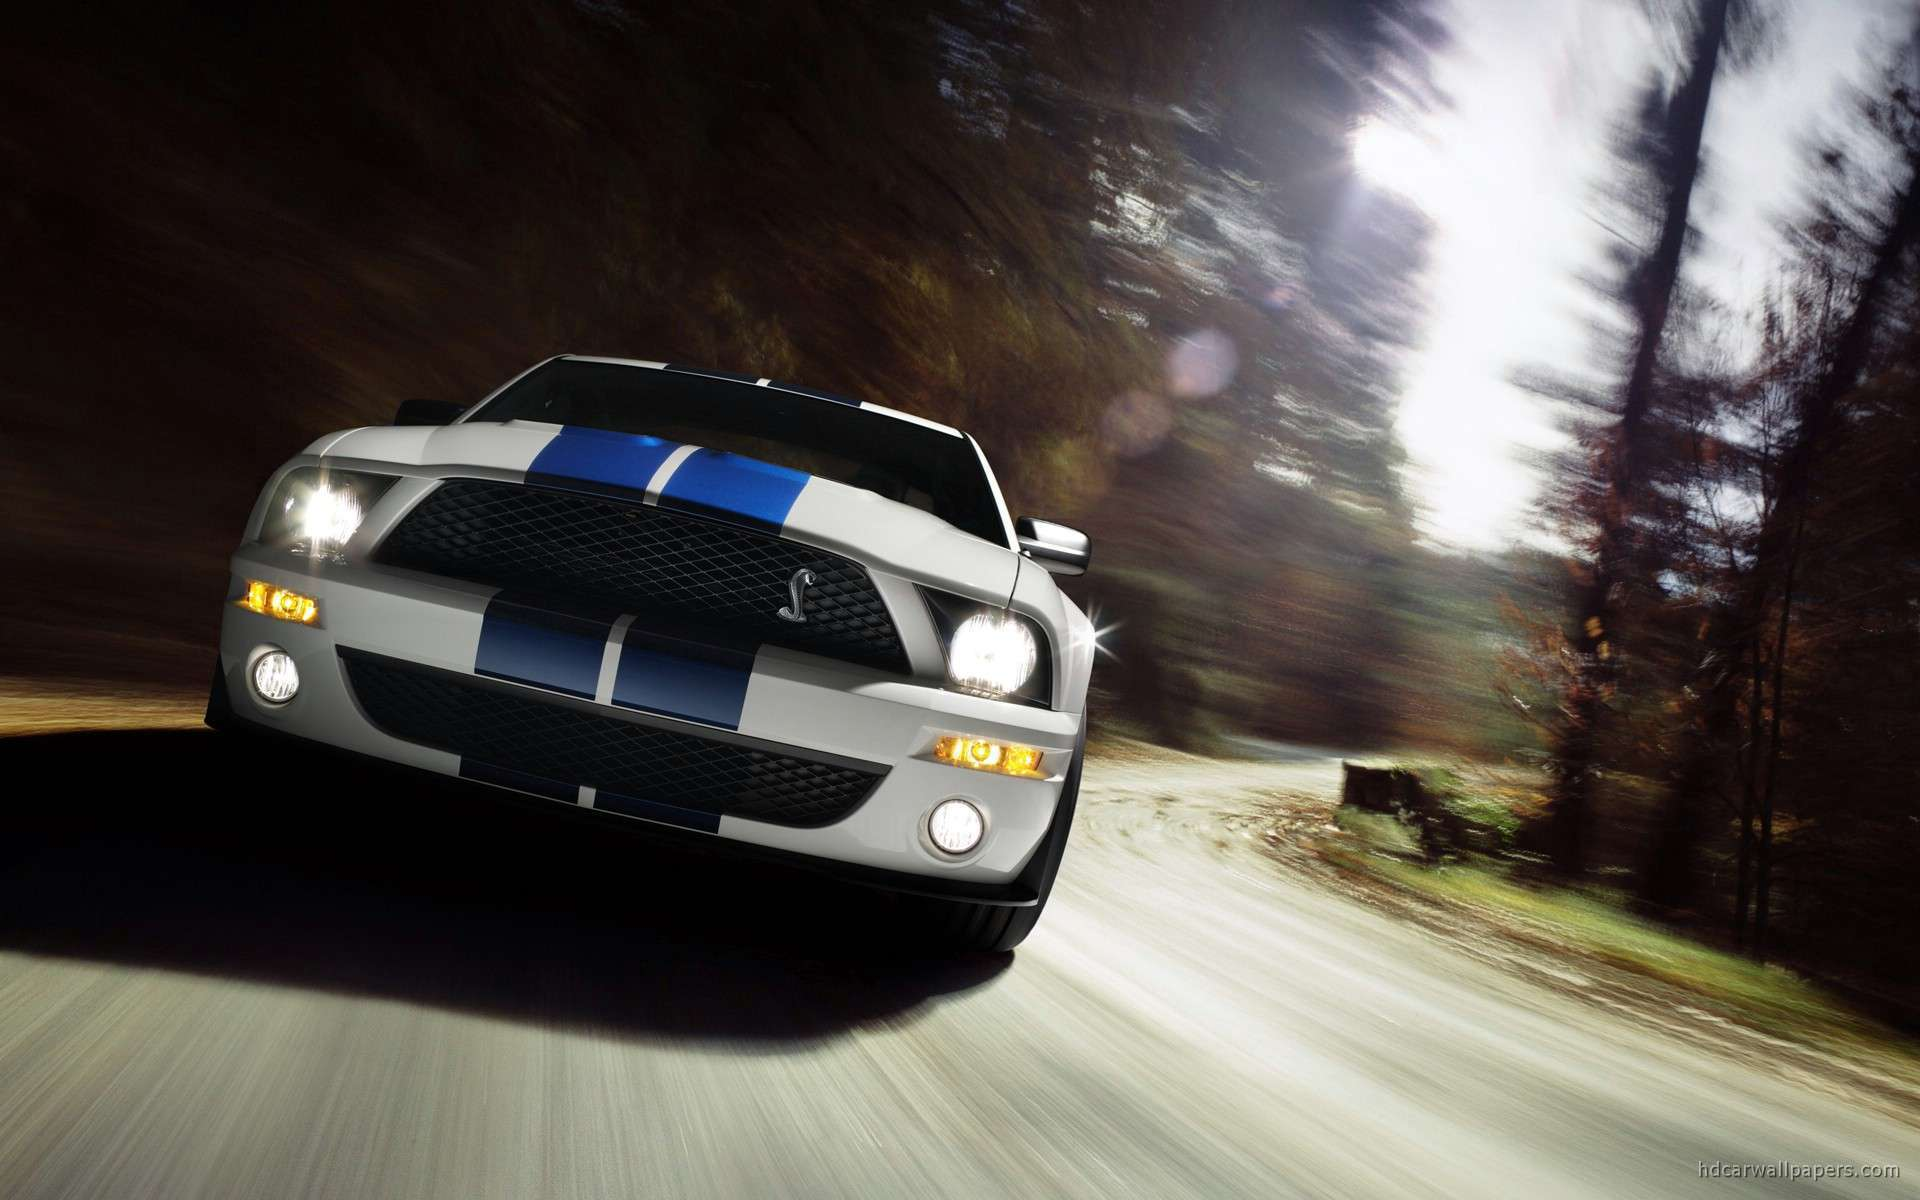 Ford Hd Wallpapers For Desktop Laptop Backgrounds Facebook Cover